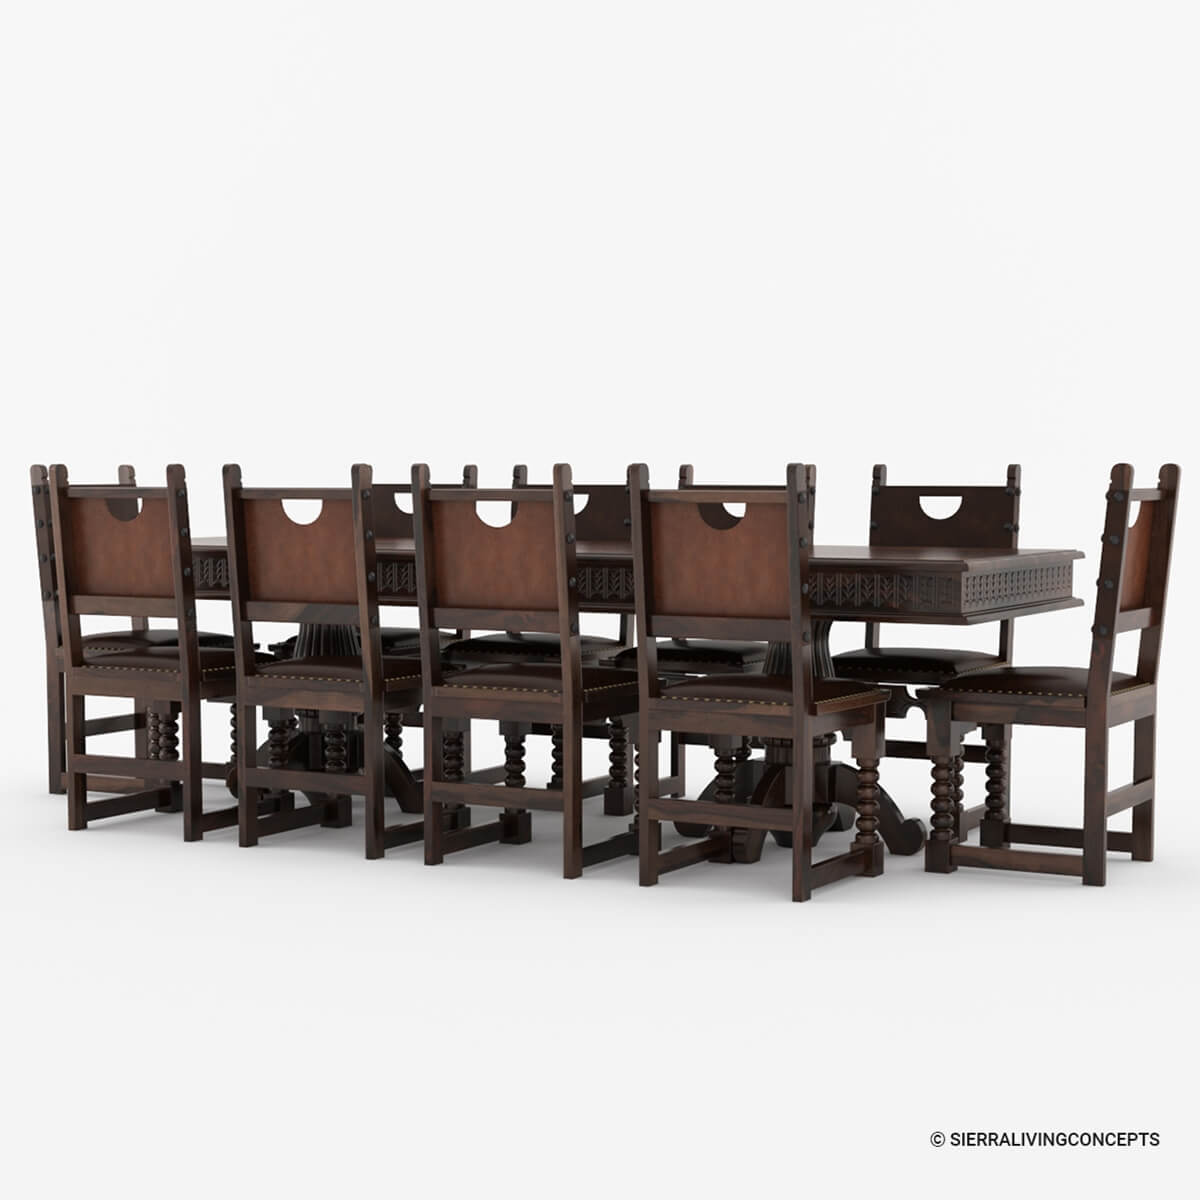 Rustic Dining Room Table Set: Nottingham Solid Wood Large Rustic Dining Room Table Chair Set